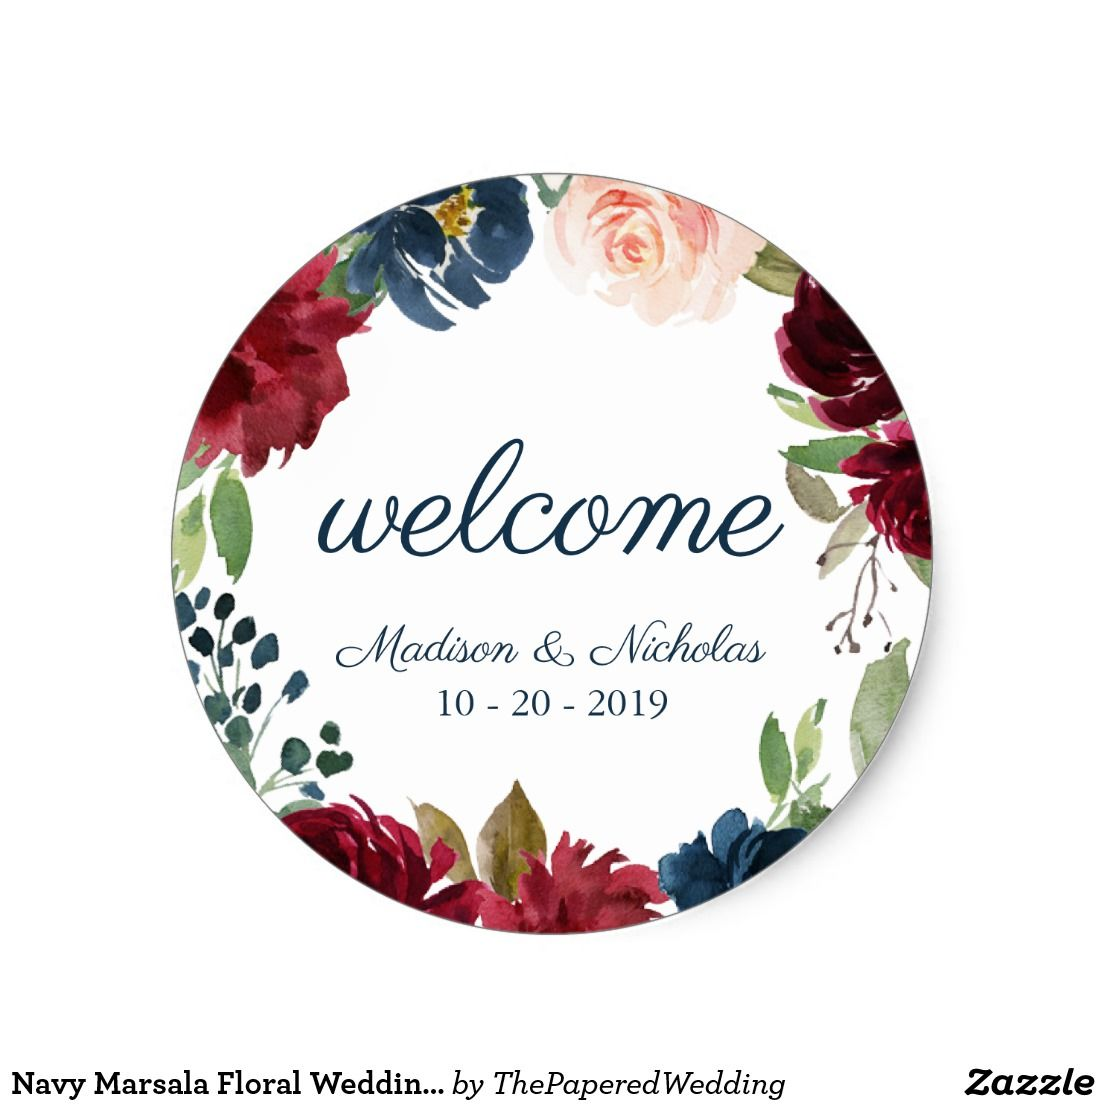 Navy marsala floral wedding welcome stickers zazzle zazlemade wedding stickers stickersheets custom template couples typography crafts stationery